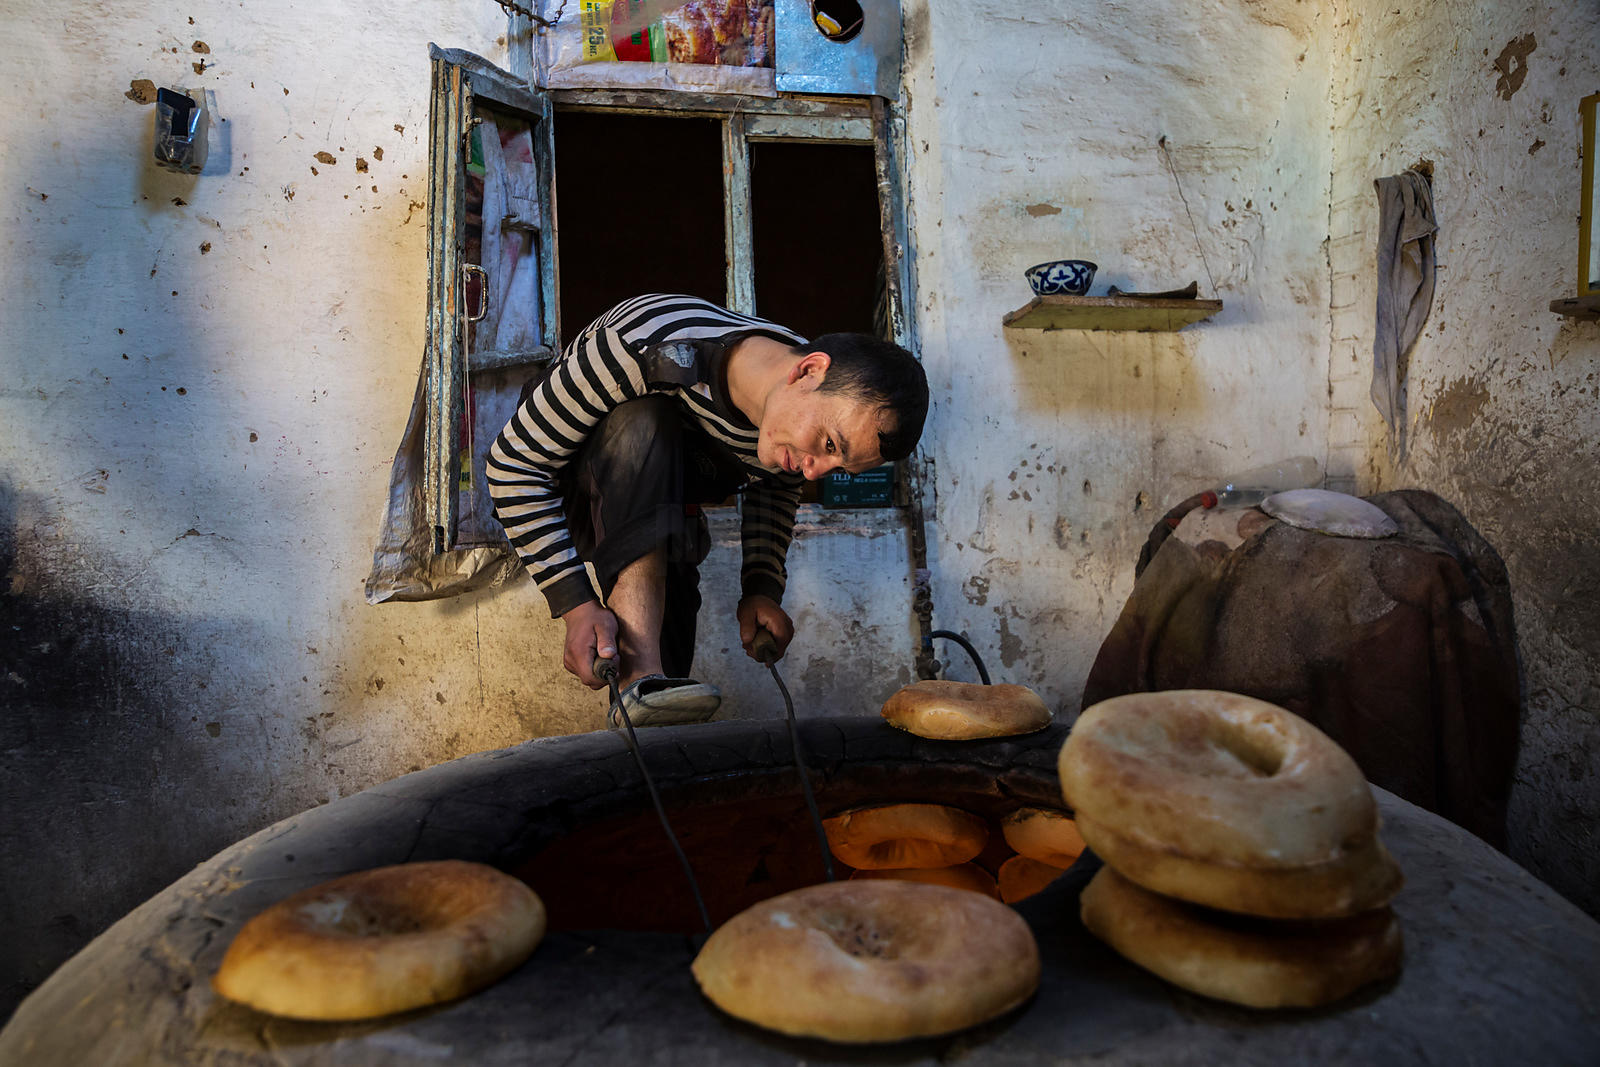 A Baker Prepares to Remove a Loaf of Freshly Cooked Bread from the Oven